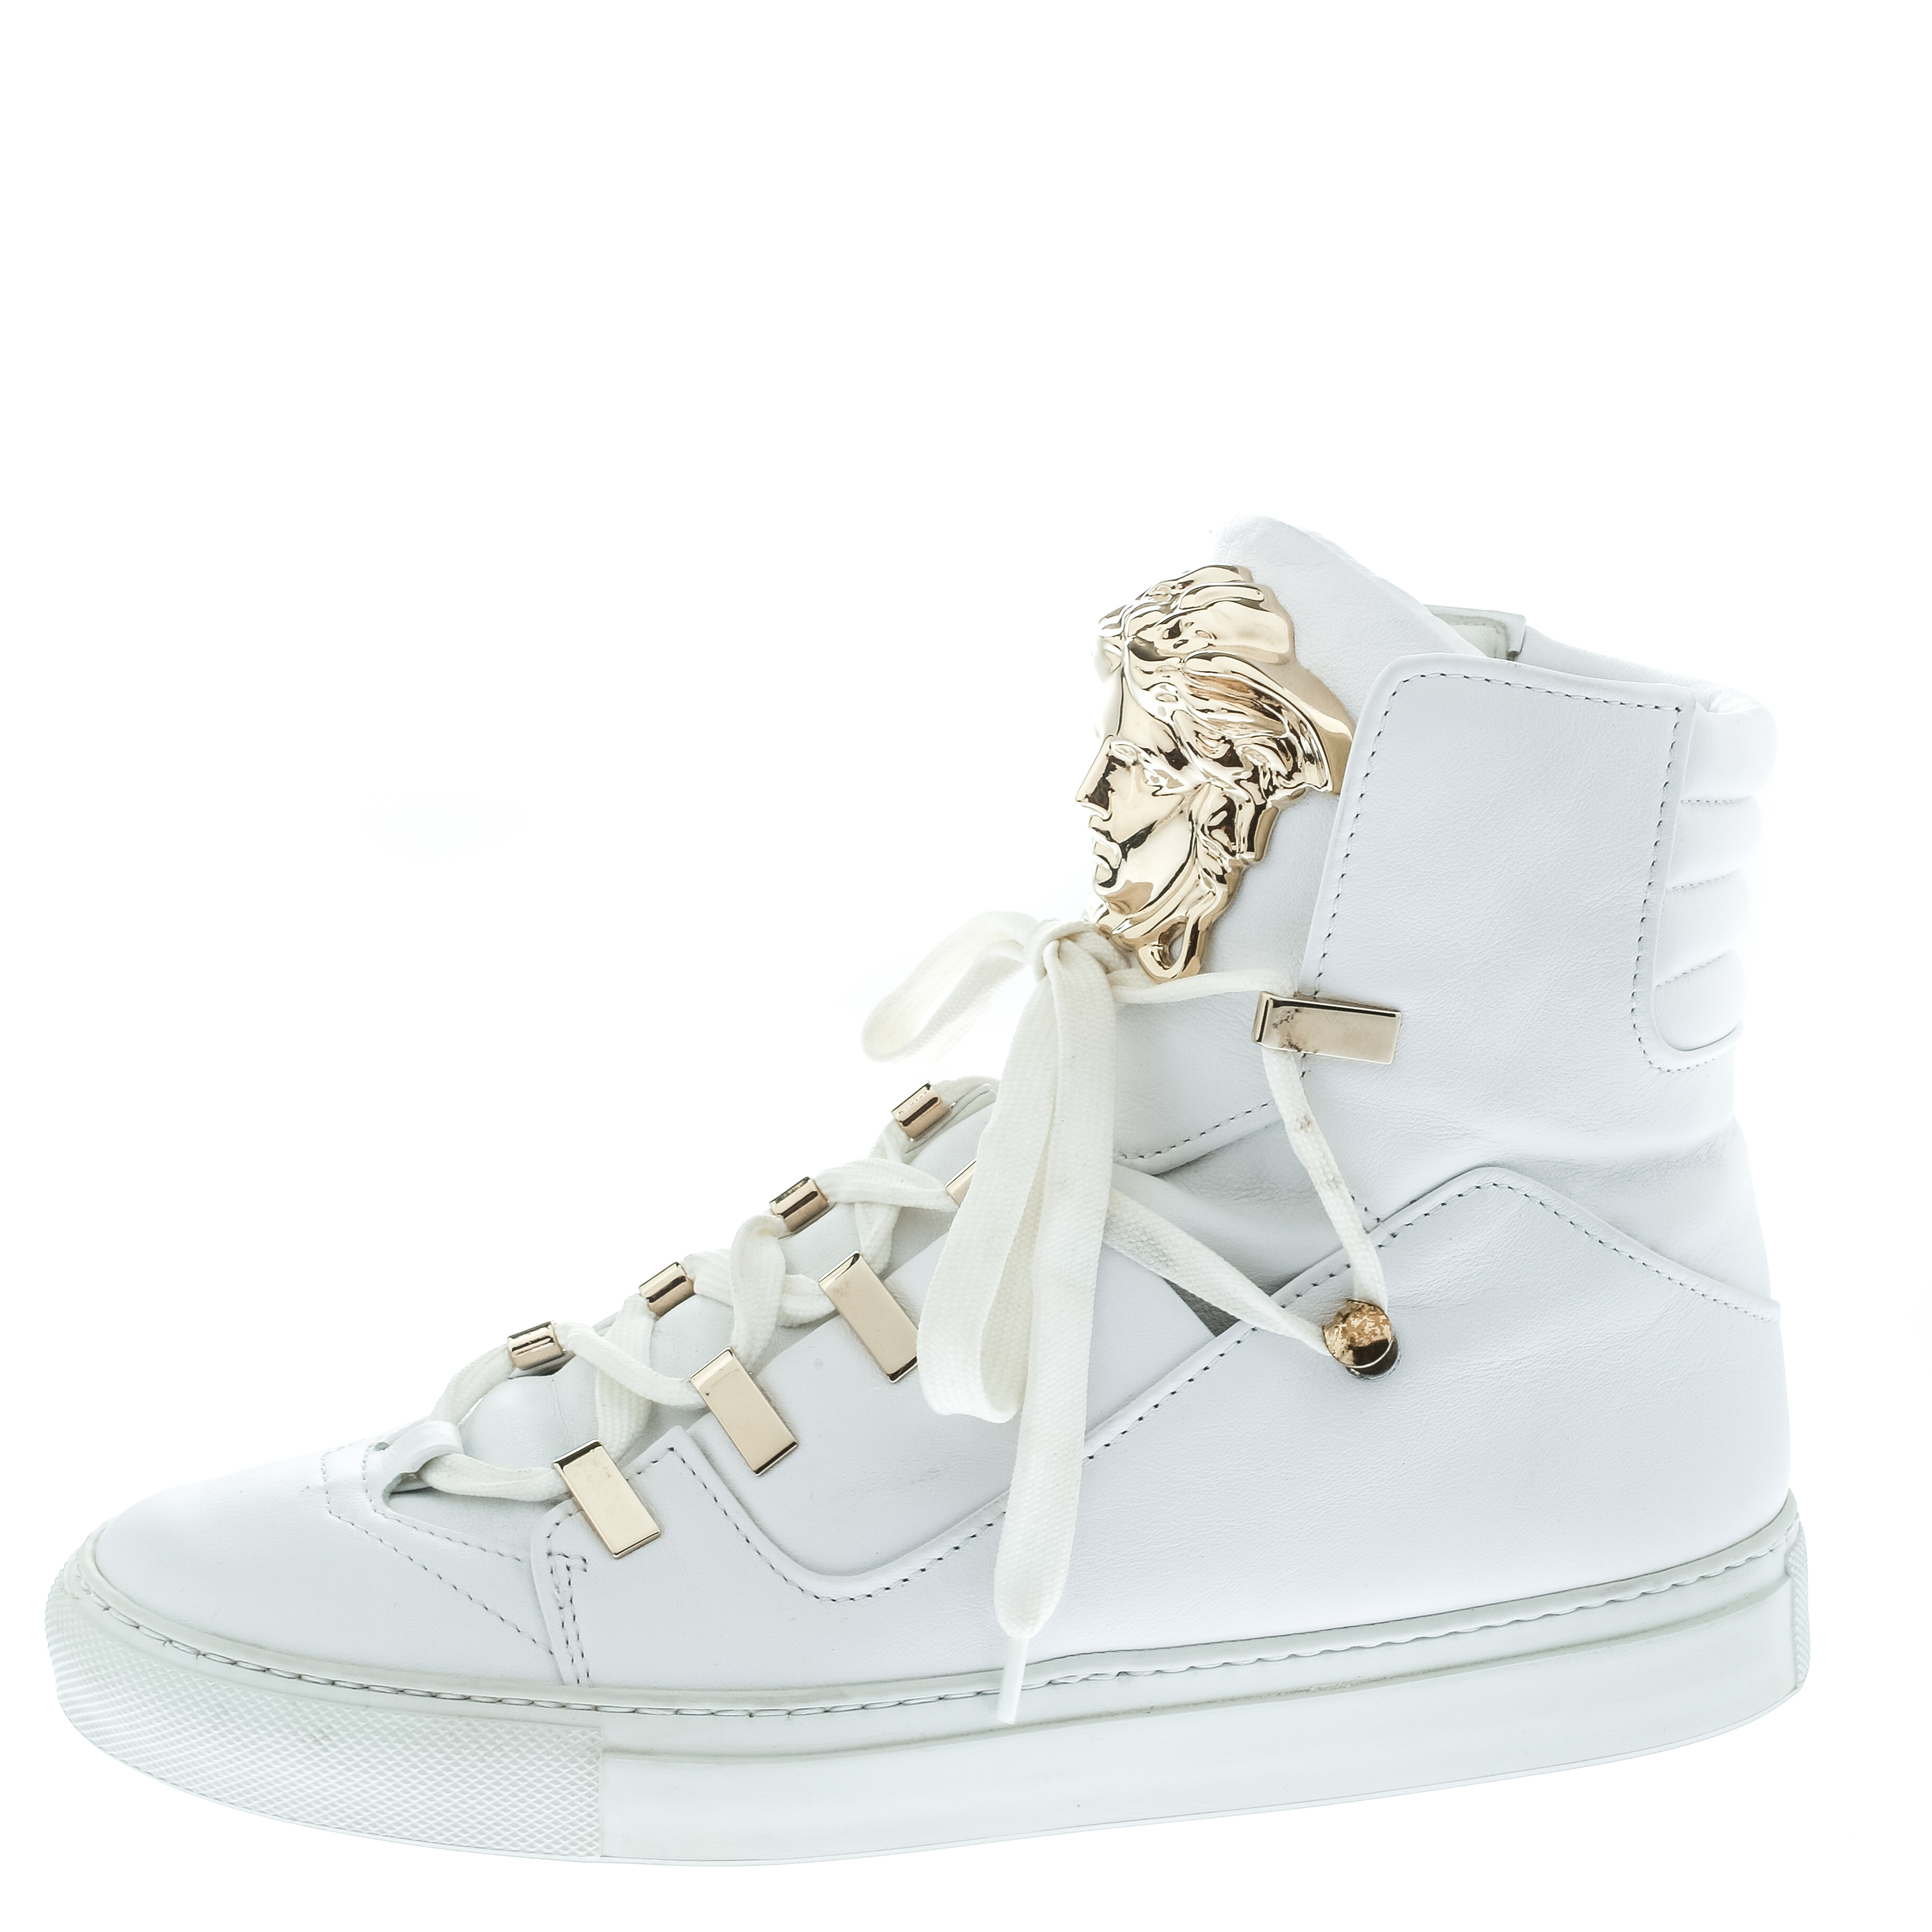 Versace White Leather Medusa High Top